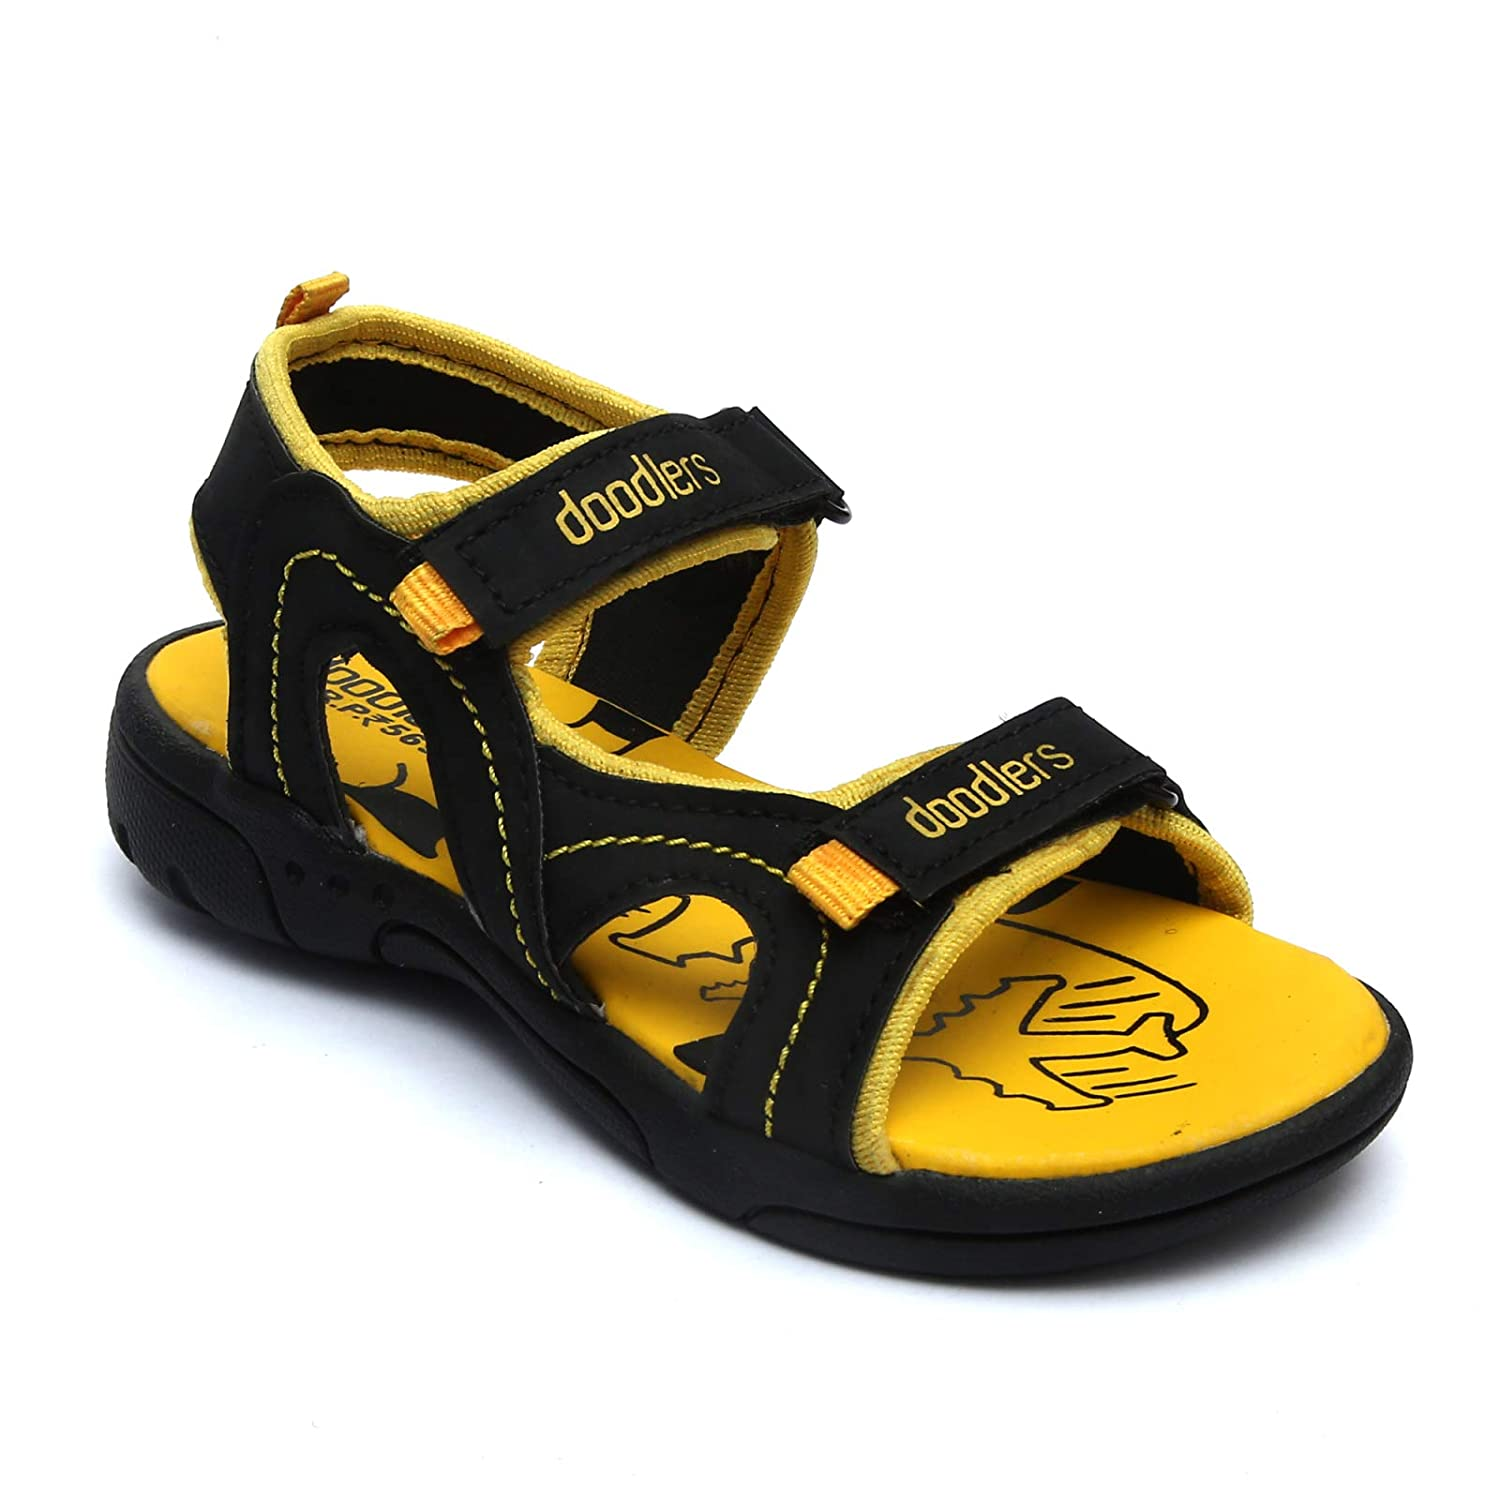 Doodlers Yellow and Black Sandals for